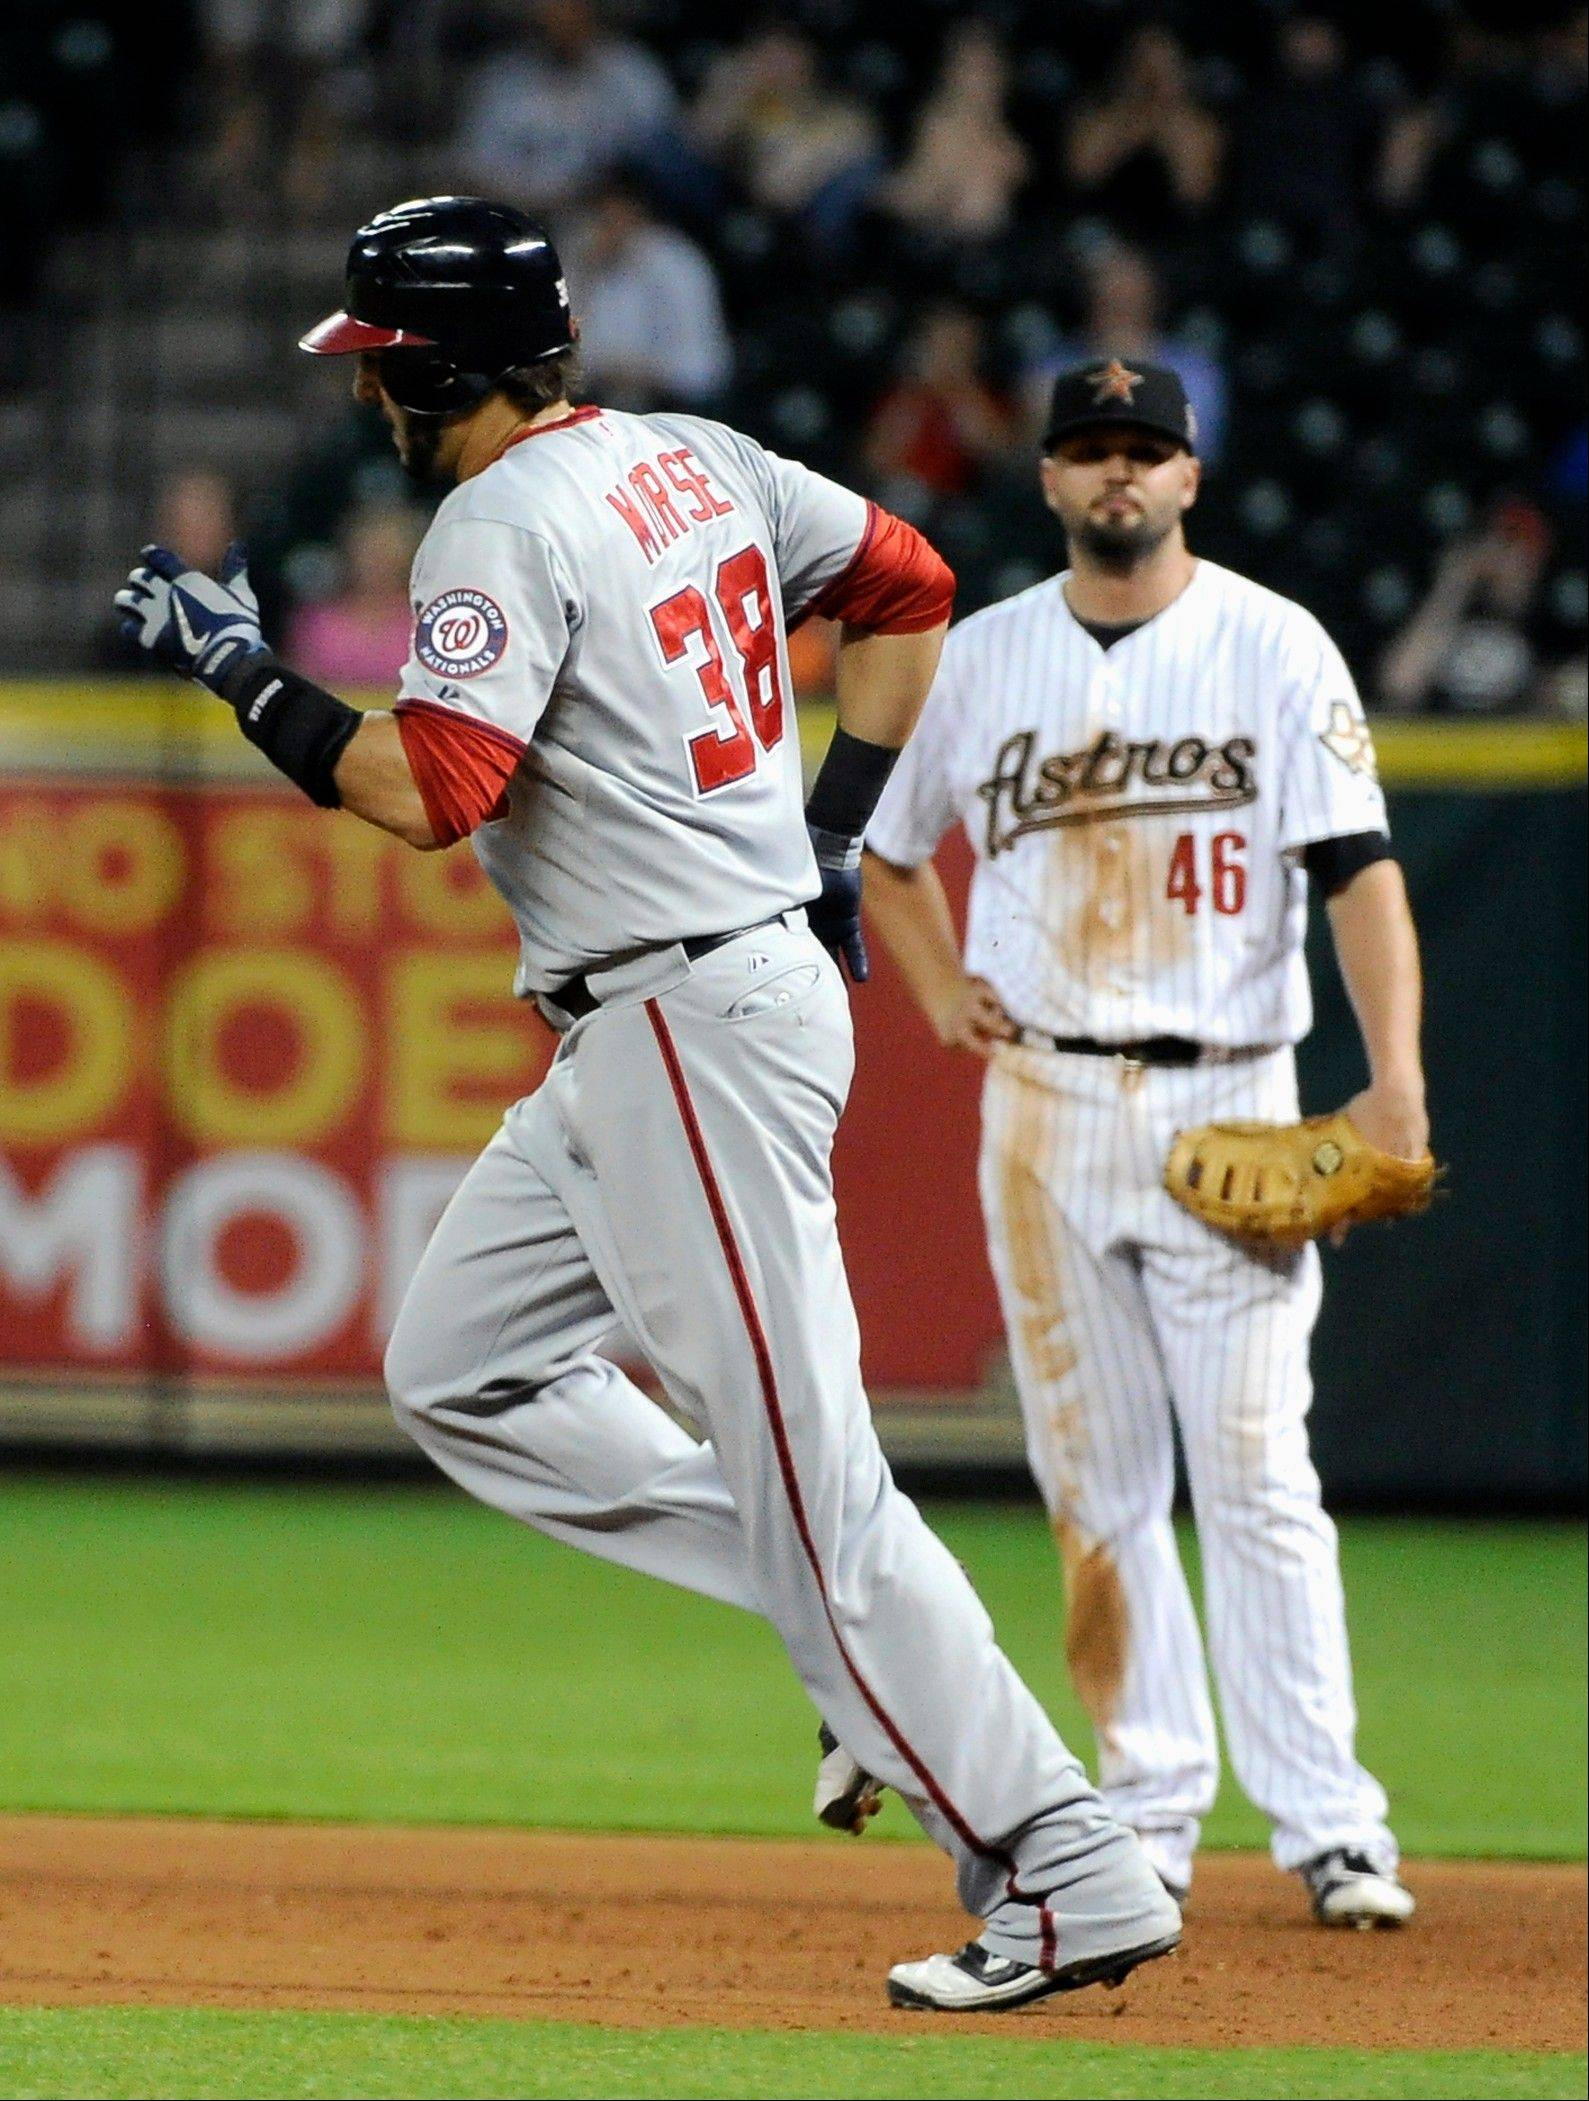 The Nationals' Michael Morse passes Astros first baseman Scott Moore on his way around the bases on a solo homer in the sixth inning Thursday in Houston.